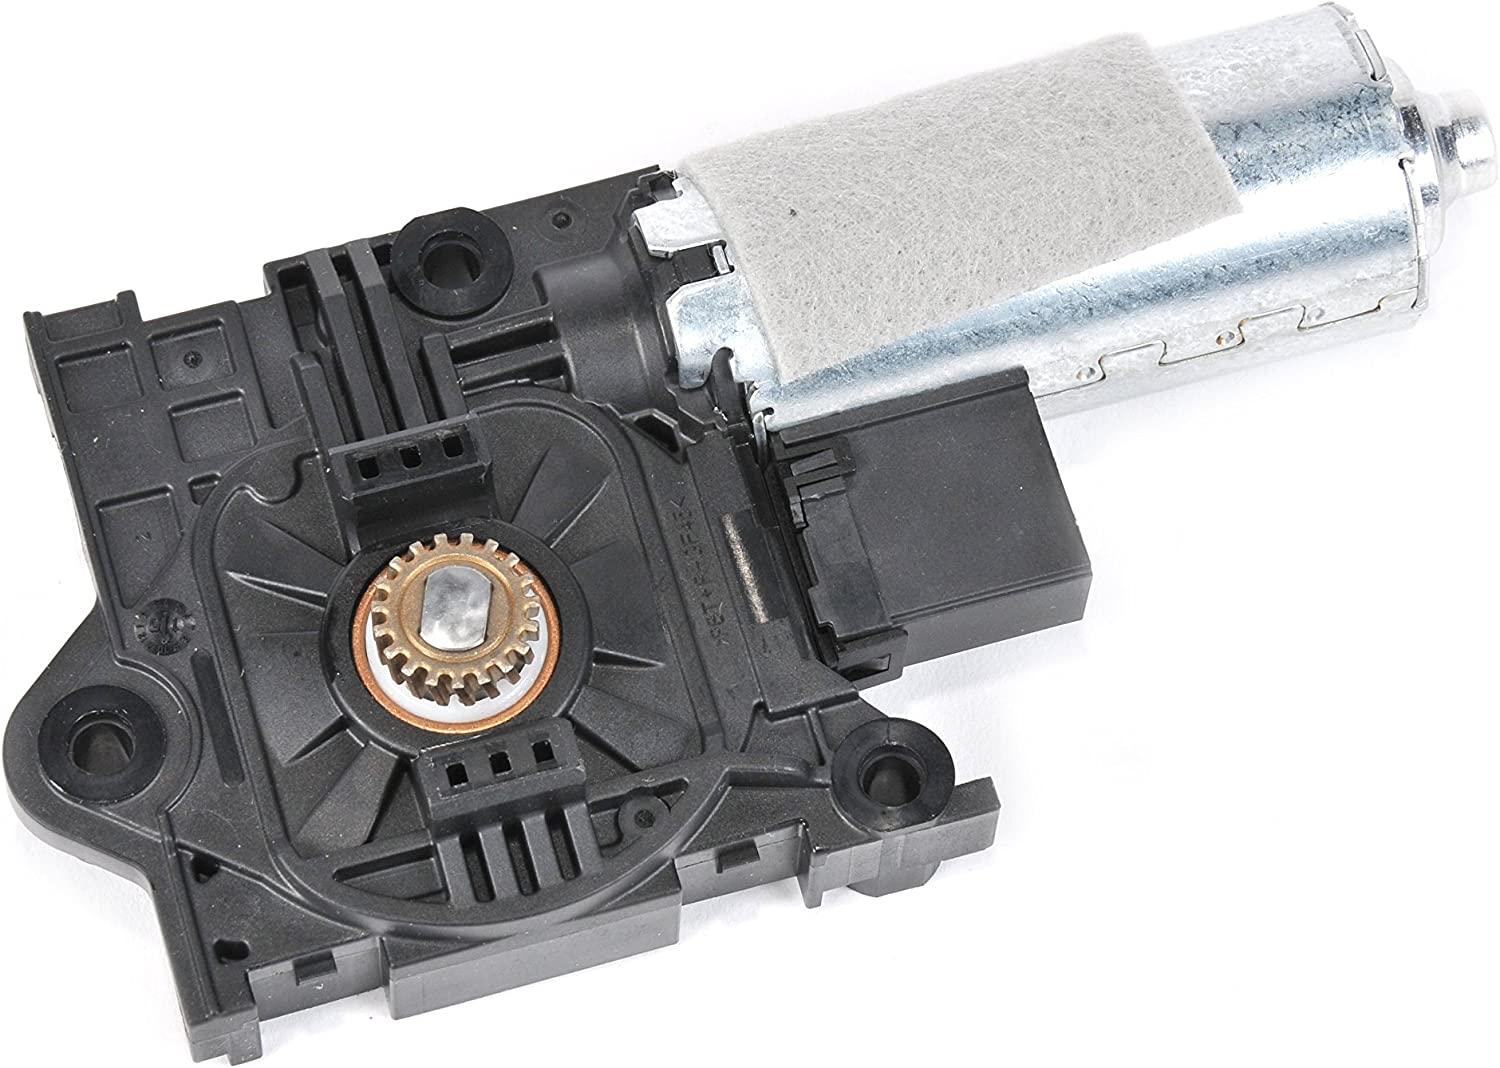 GM Genuine Parts 23205834 Sunroof 2021 model with Control Reservation Motor Window Modu